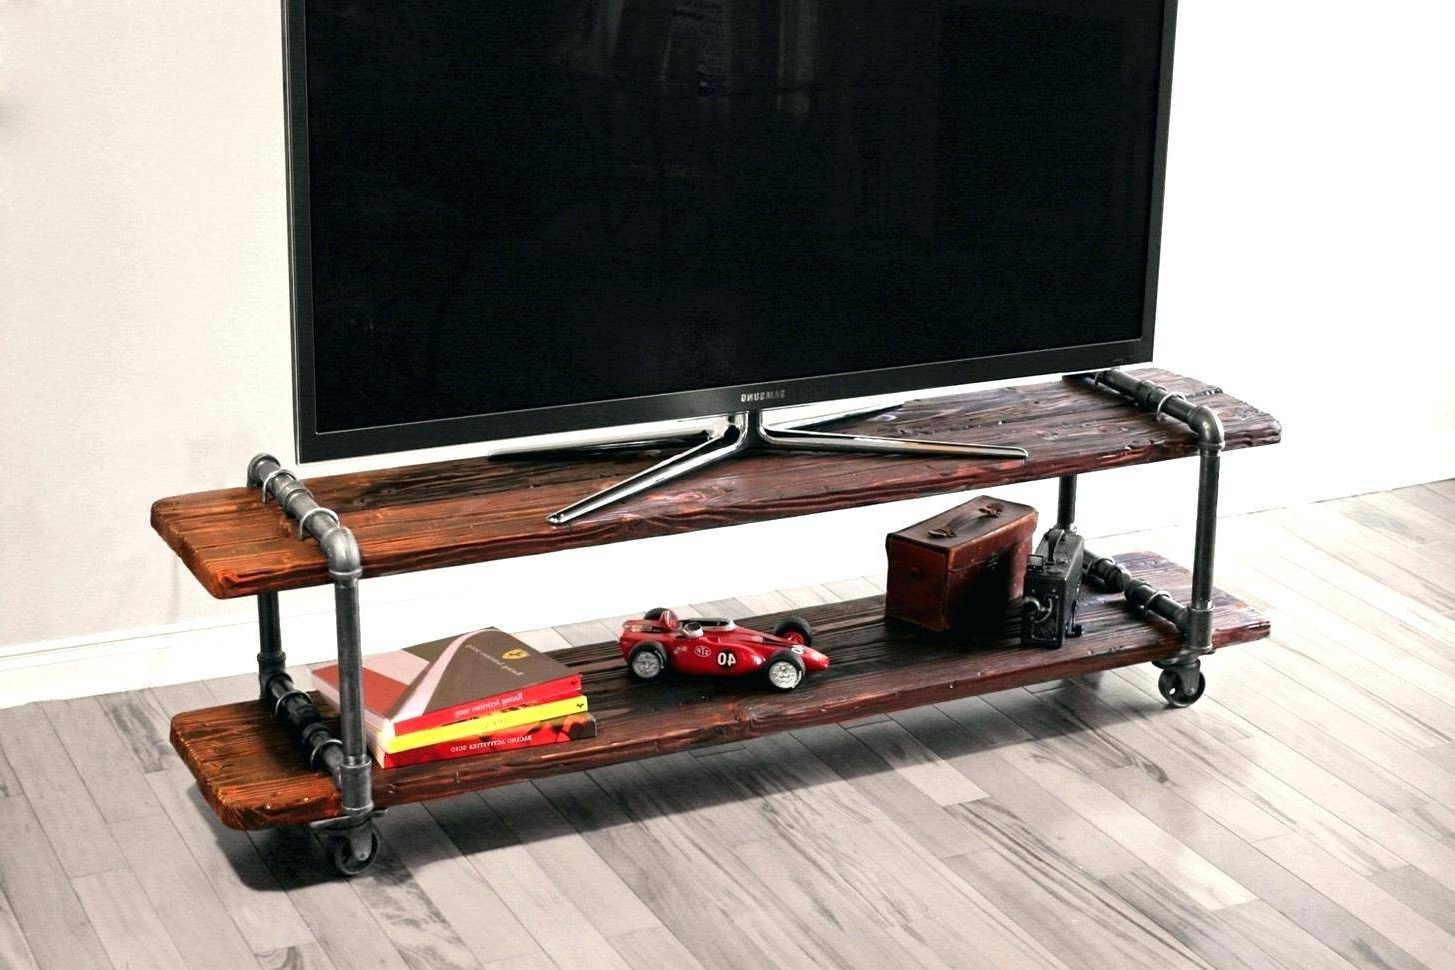 Recent Industrial Corner Tv Stands Regarding Inspirational Triangular Corner Tv Stand – Furnitureinredsea (View 18 of 20)